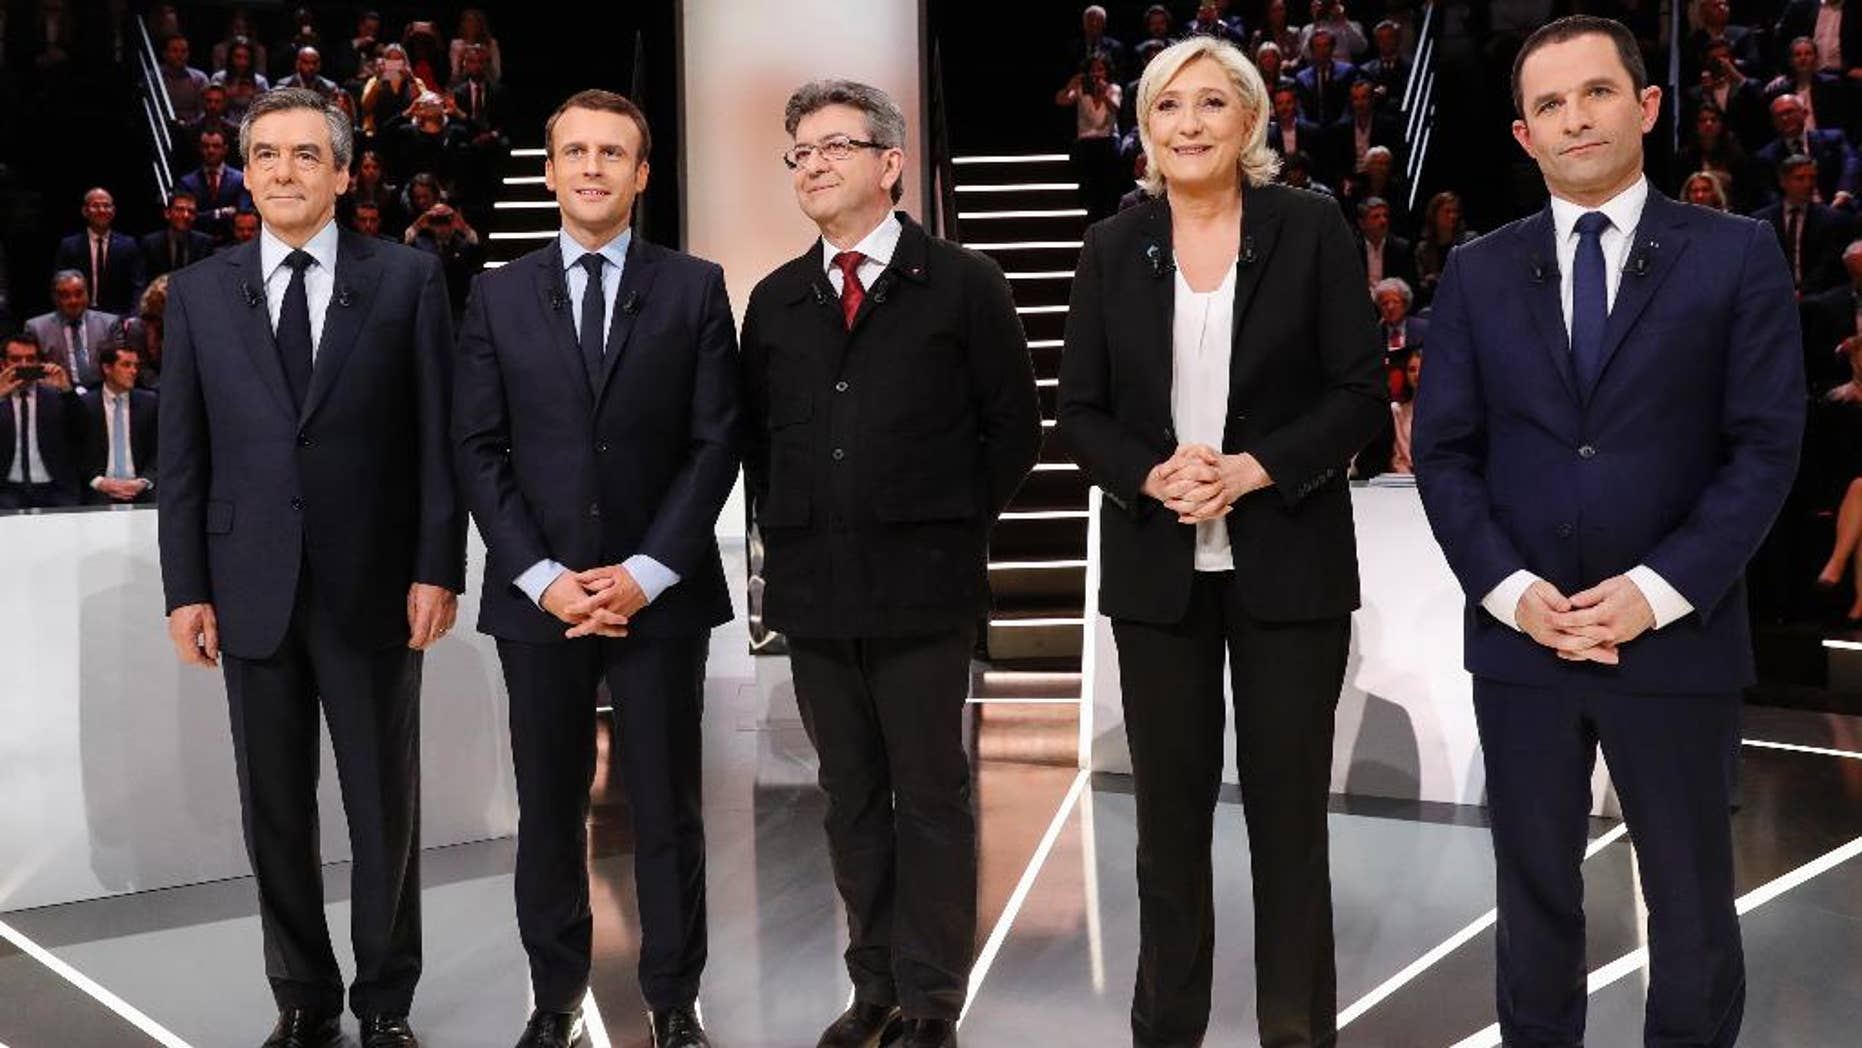 From left to right: conservative candidate Francois Fillon, independent centrist candidate Emmanuel Macron, far-left candidate Jean-Luc Melenchon, far-right candidate Marine Le Pen and socialist candidate Benoit Hamon.